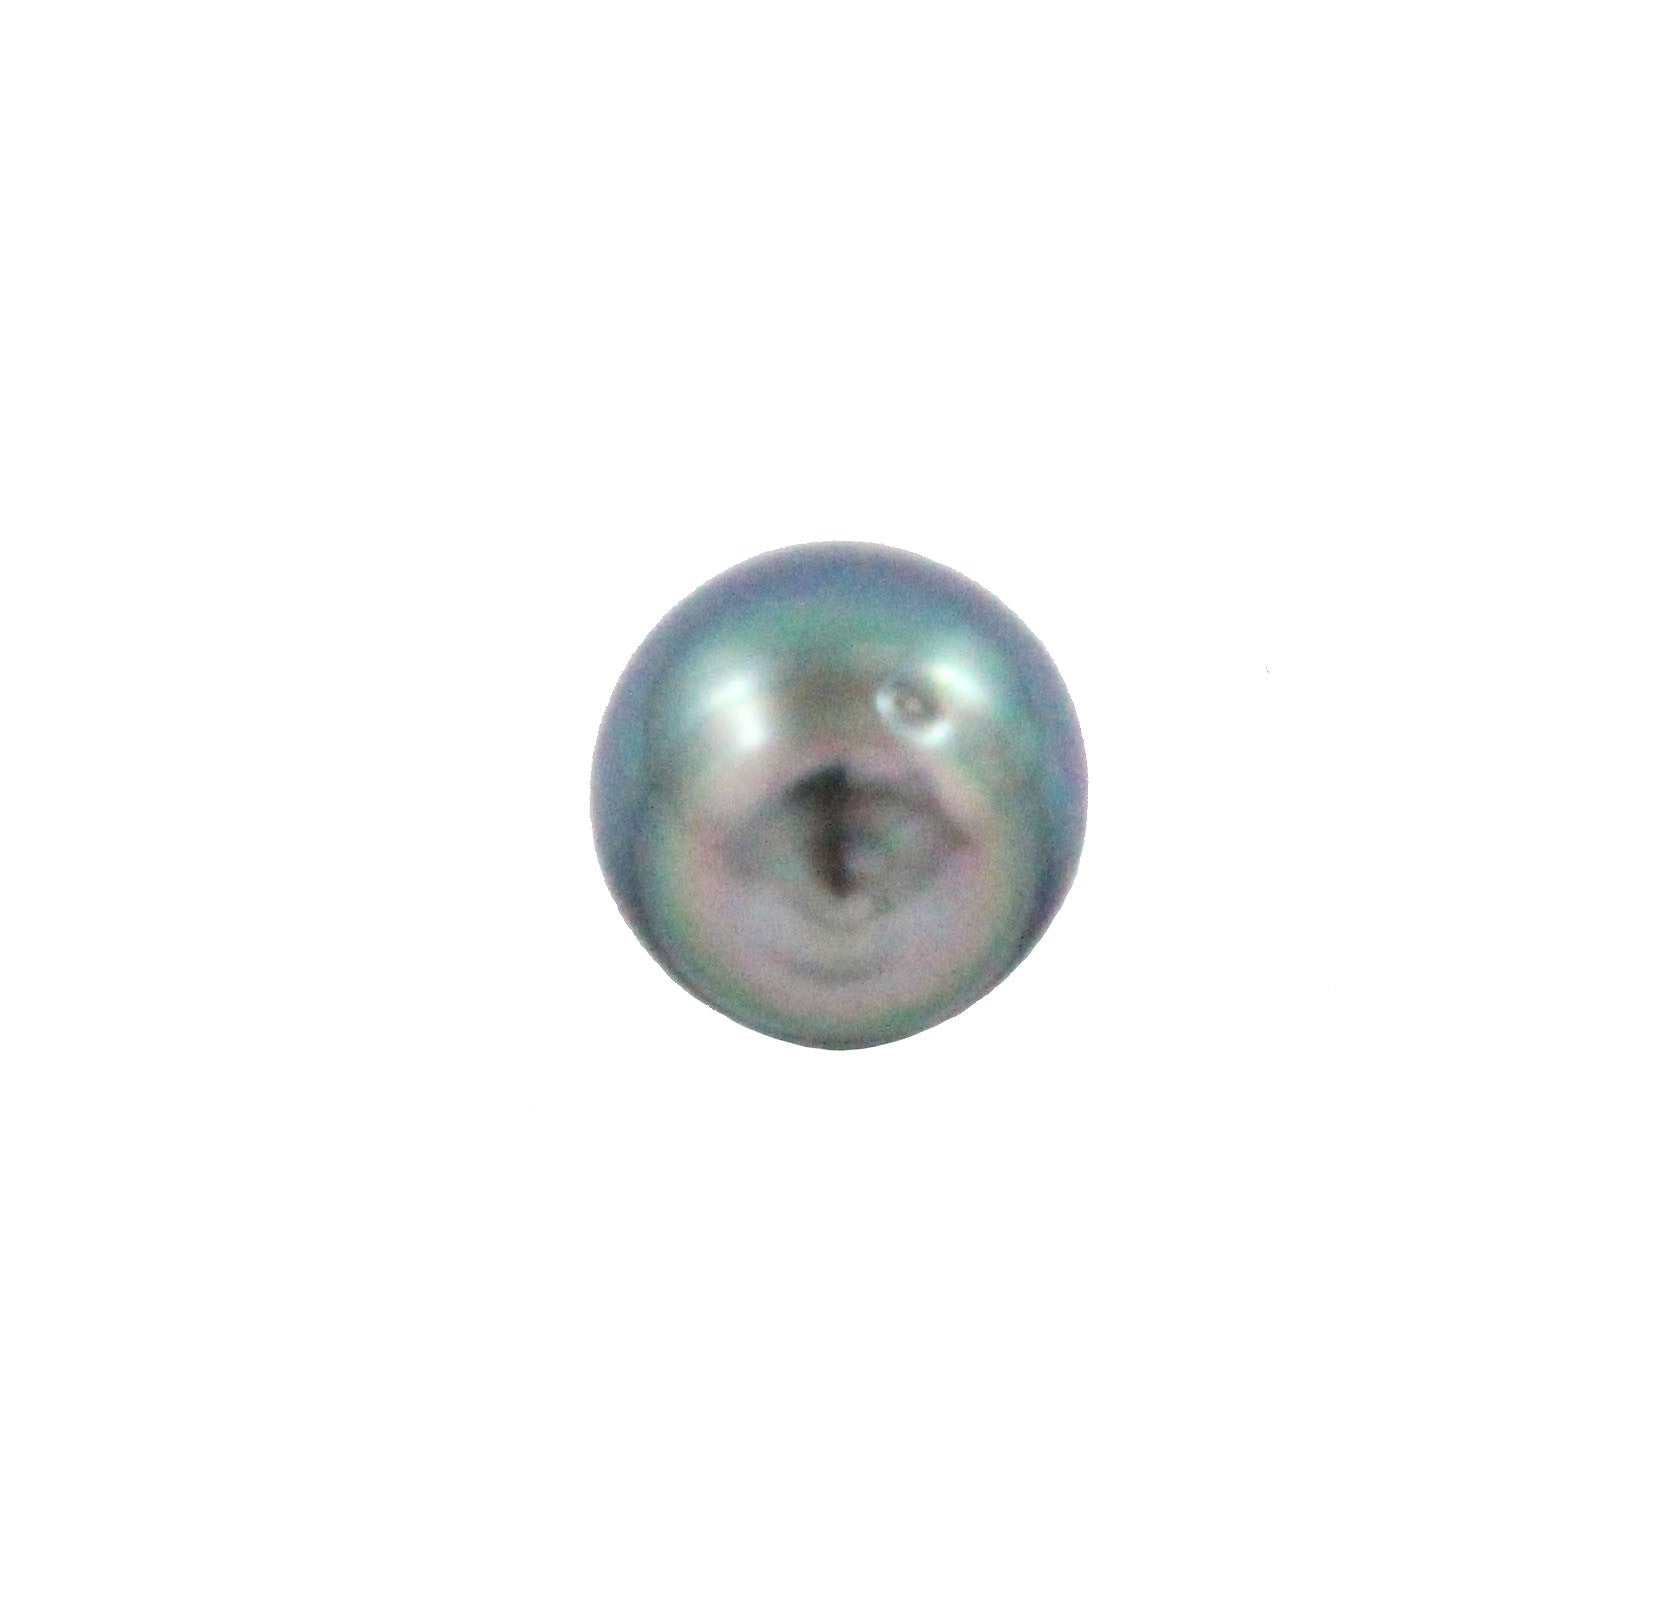 Tahitian pearl undrilled 0.94gr mm 9.53x8.65mm - Purchase only with custom order - Sarah Hughes - 5